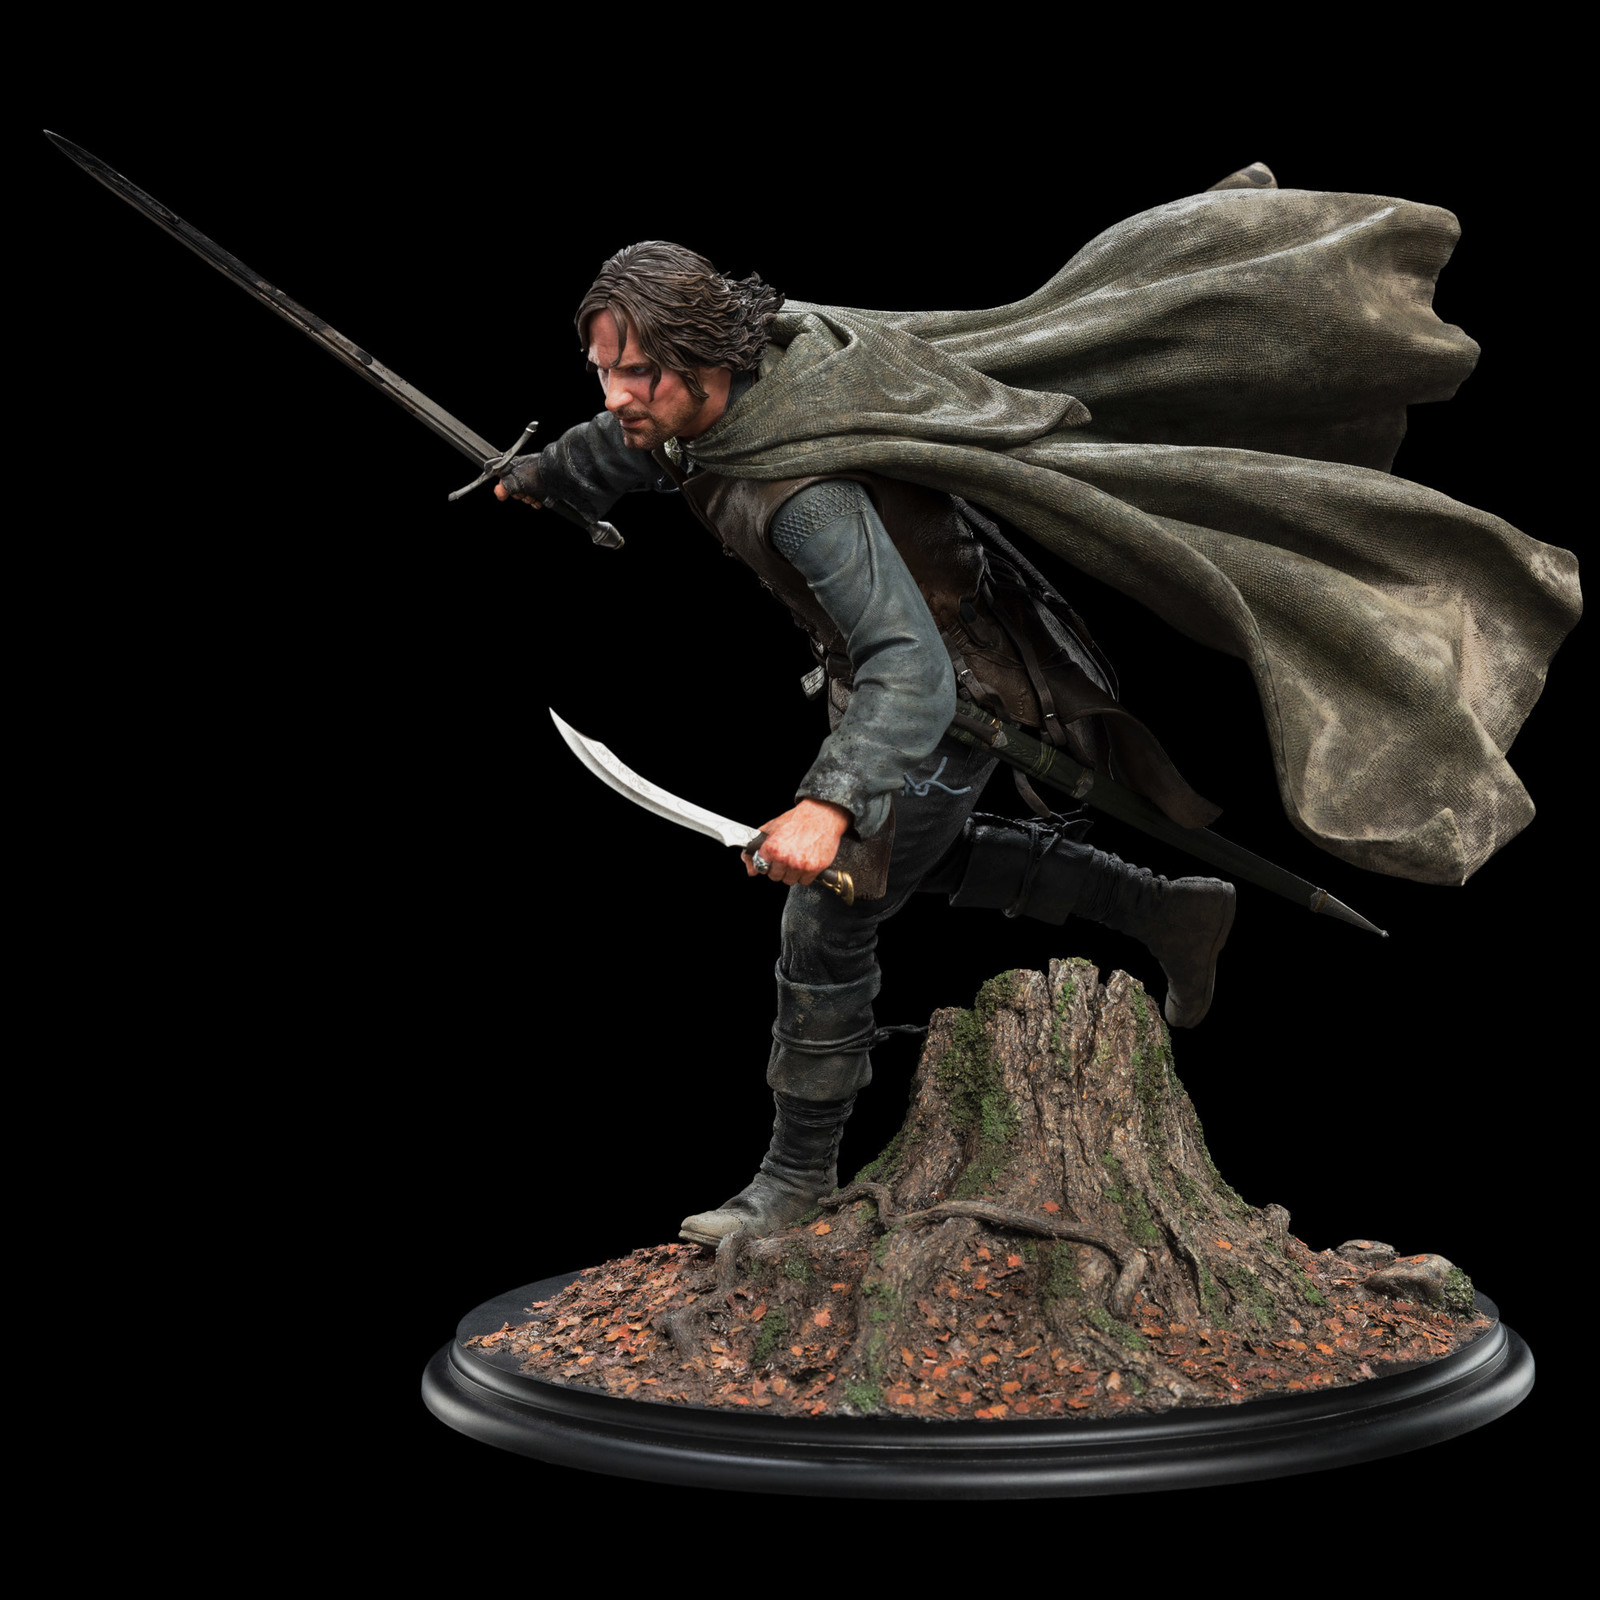 Lord of the Rings: Aragorn at Amon Hen - 1/6 Scale Replica Figure